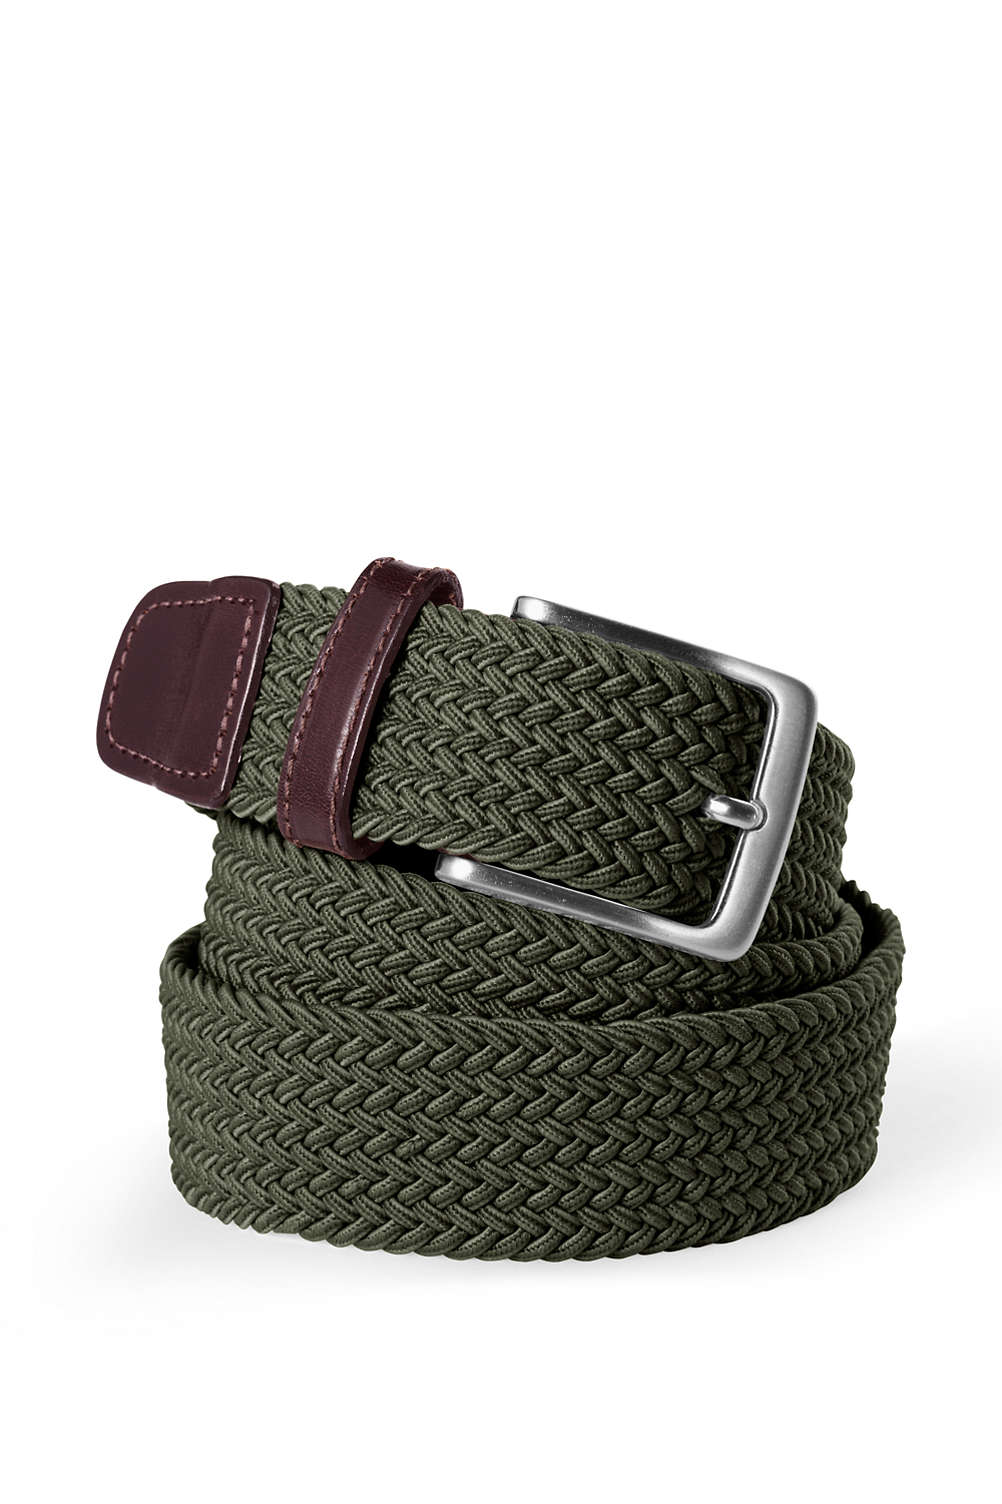 87256f6d6c9cf Men's Elastic Braid Belt from Lands' End